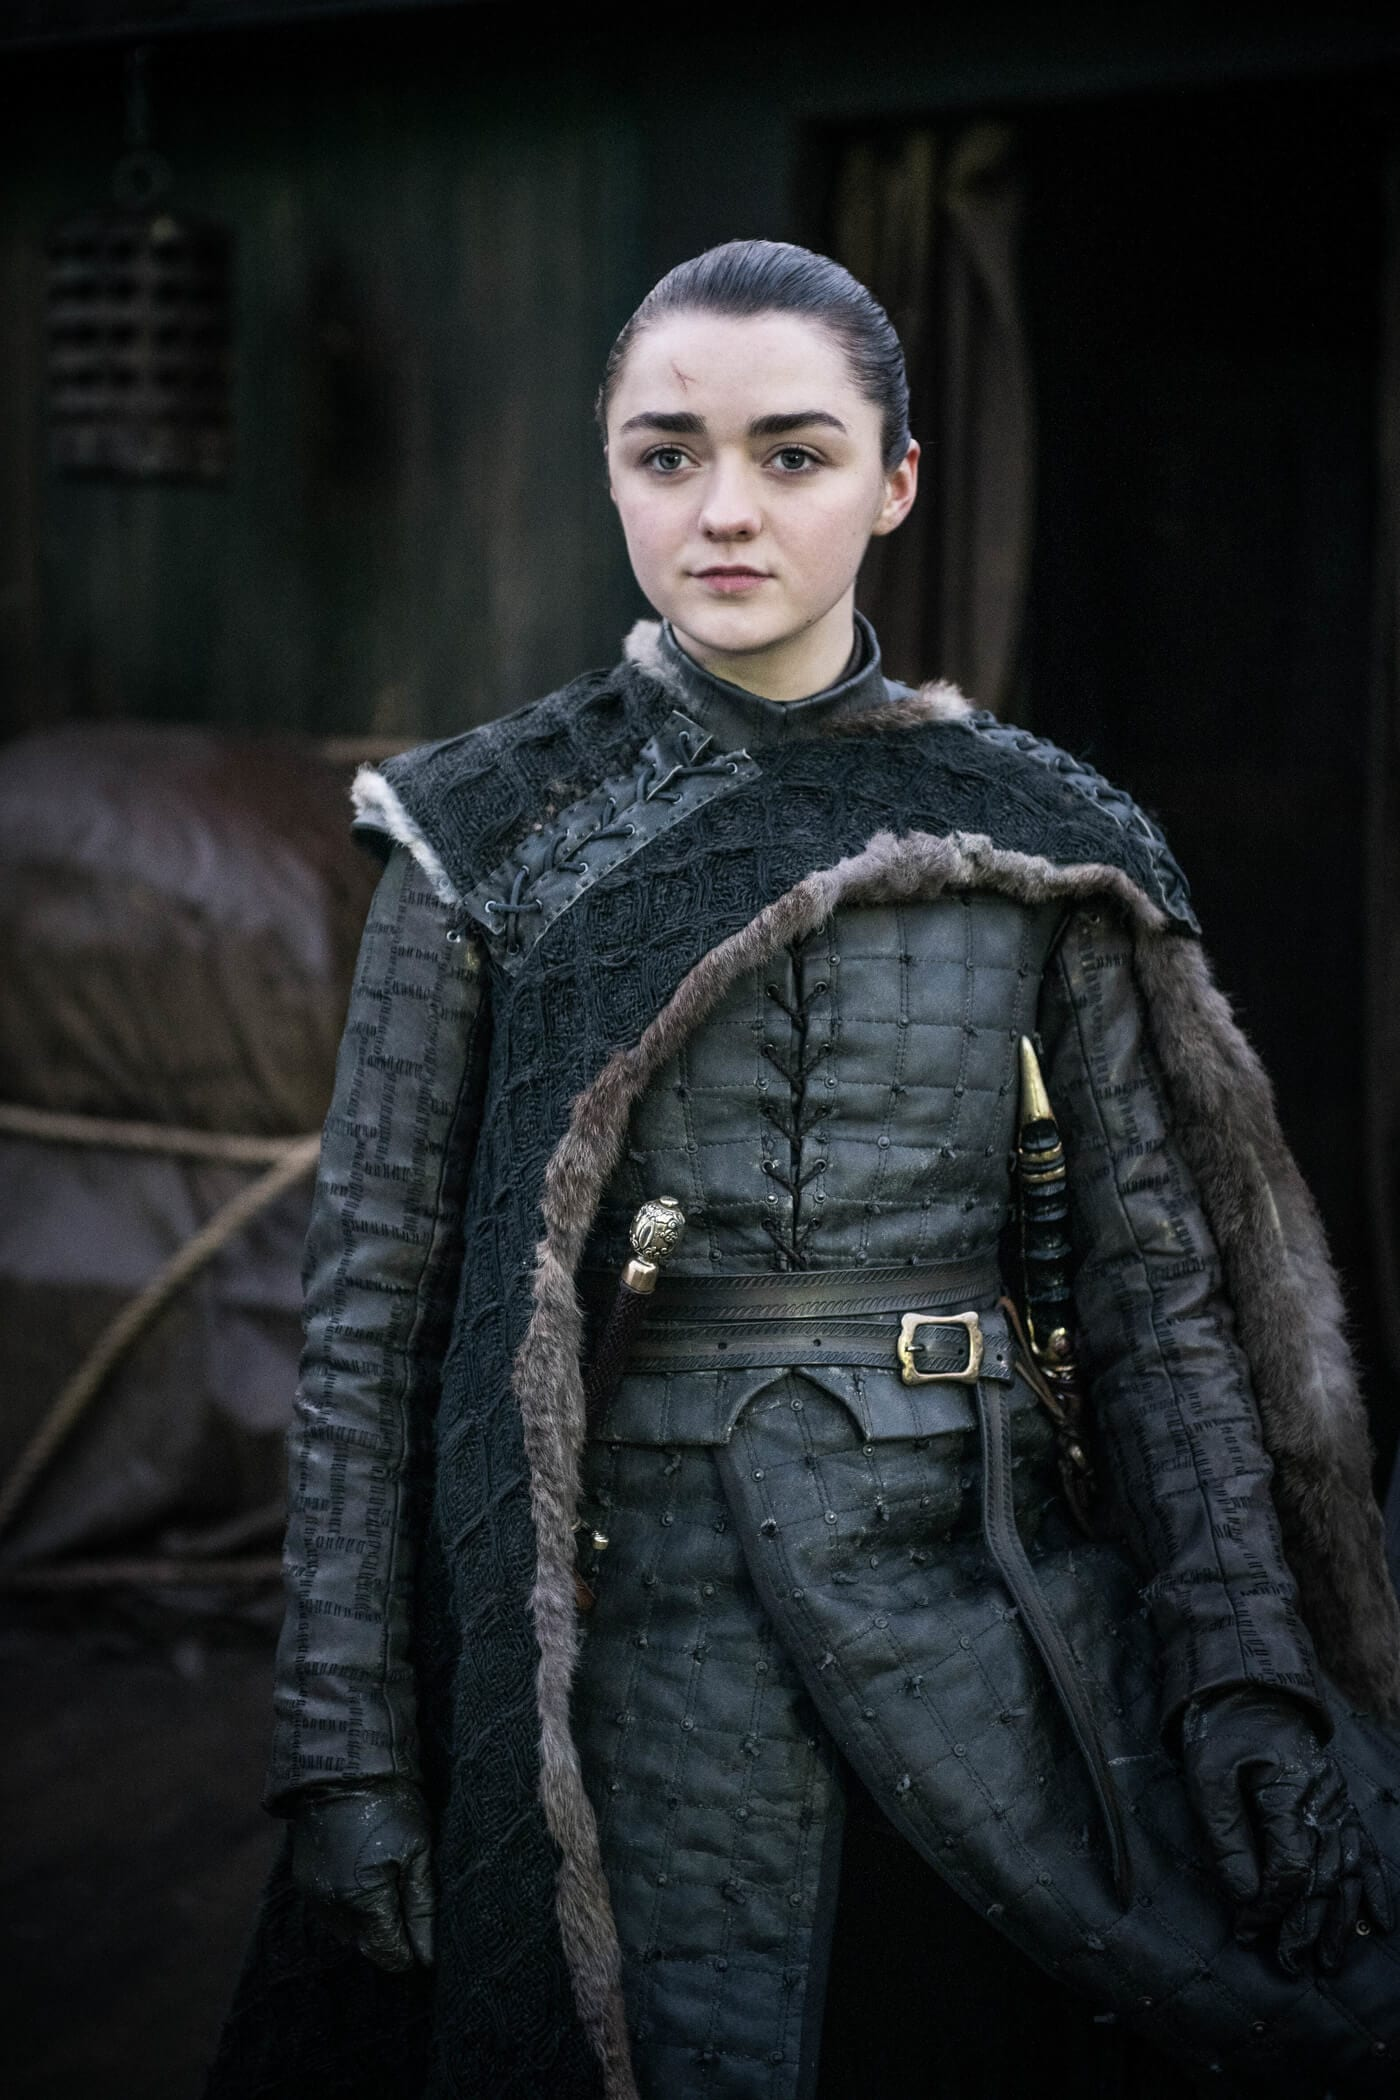 Arya stark no último episódio de game of thrones.